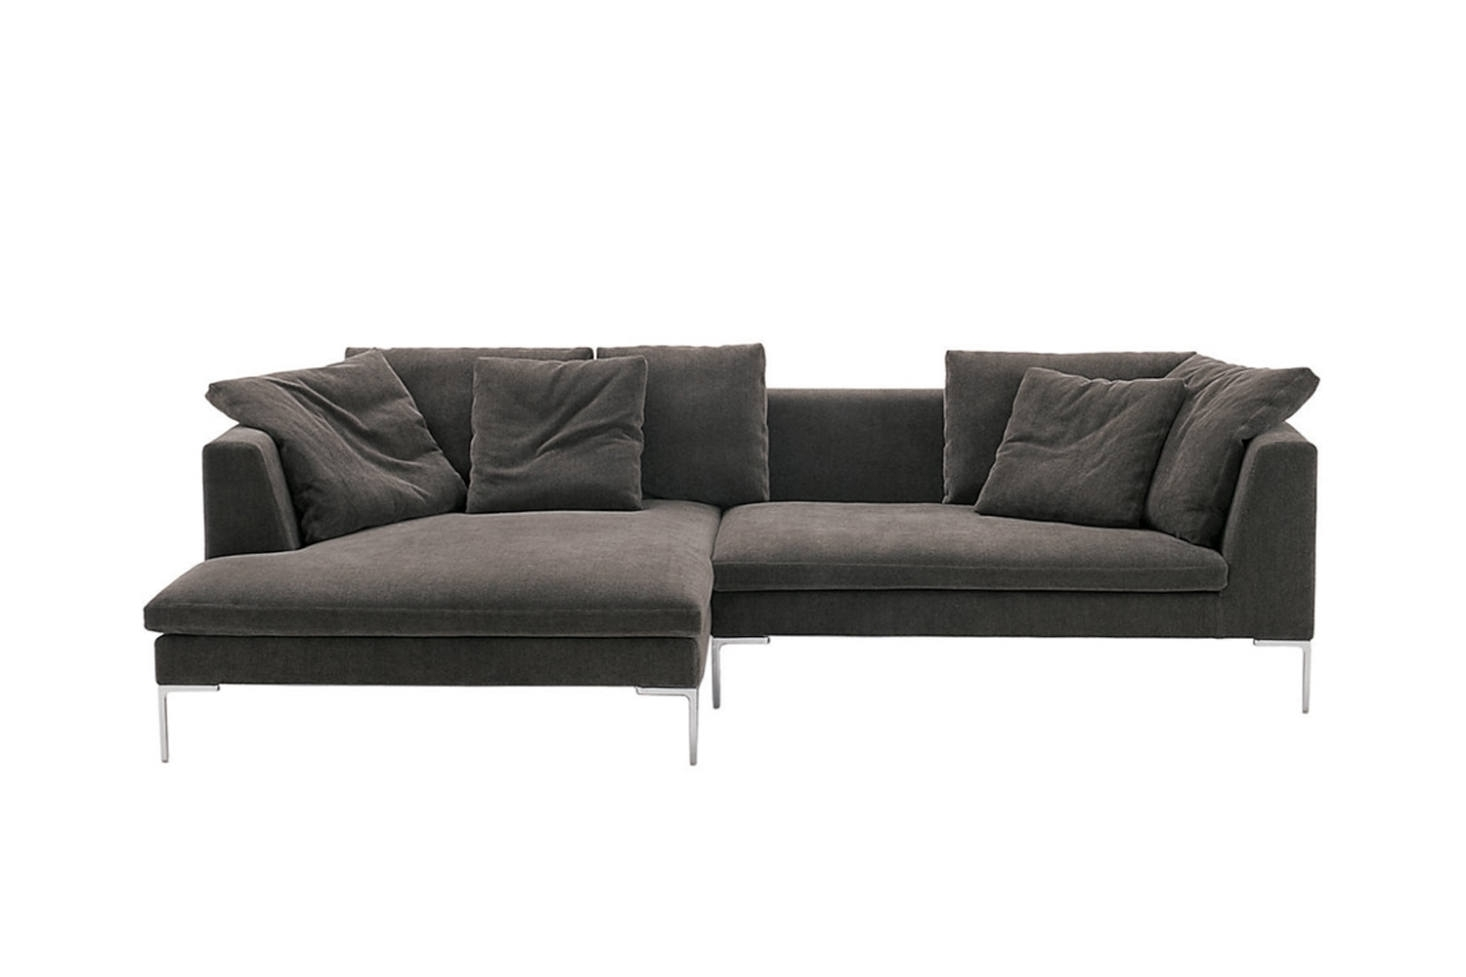 10 Easy Pieces: Sectional Chaise Sofas – Remodelista Inside Elm Grande Ii 2 Piece Sectionals (Image 7 of 25)